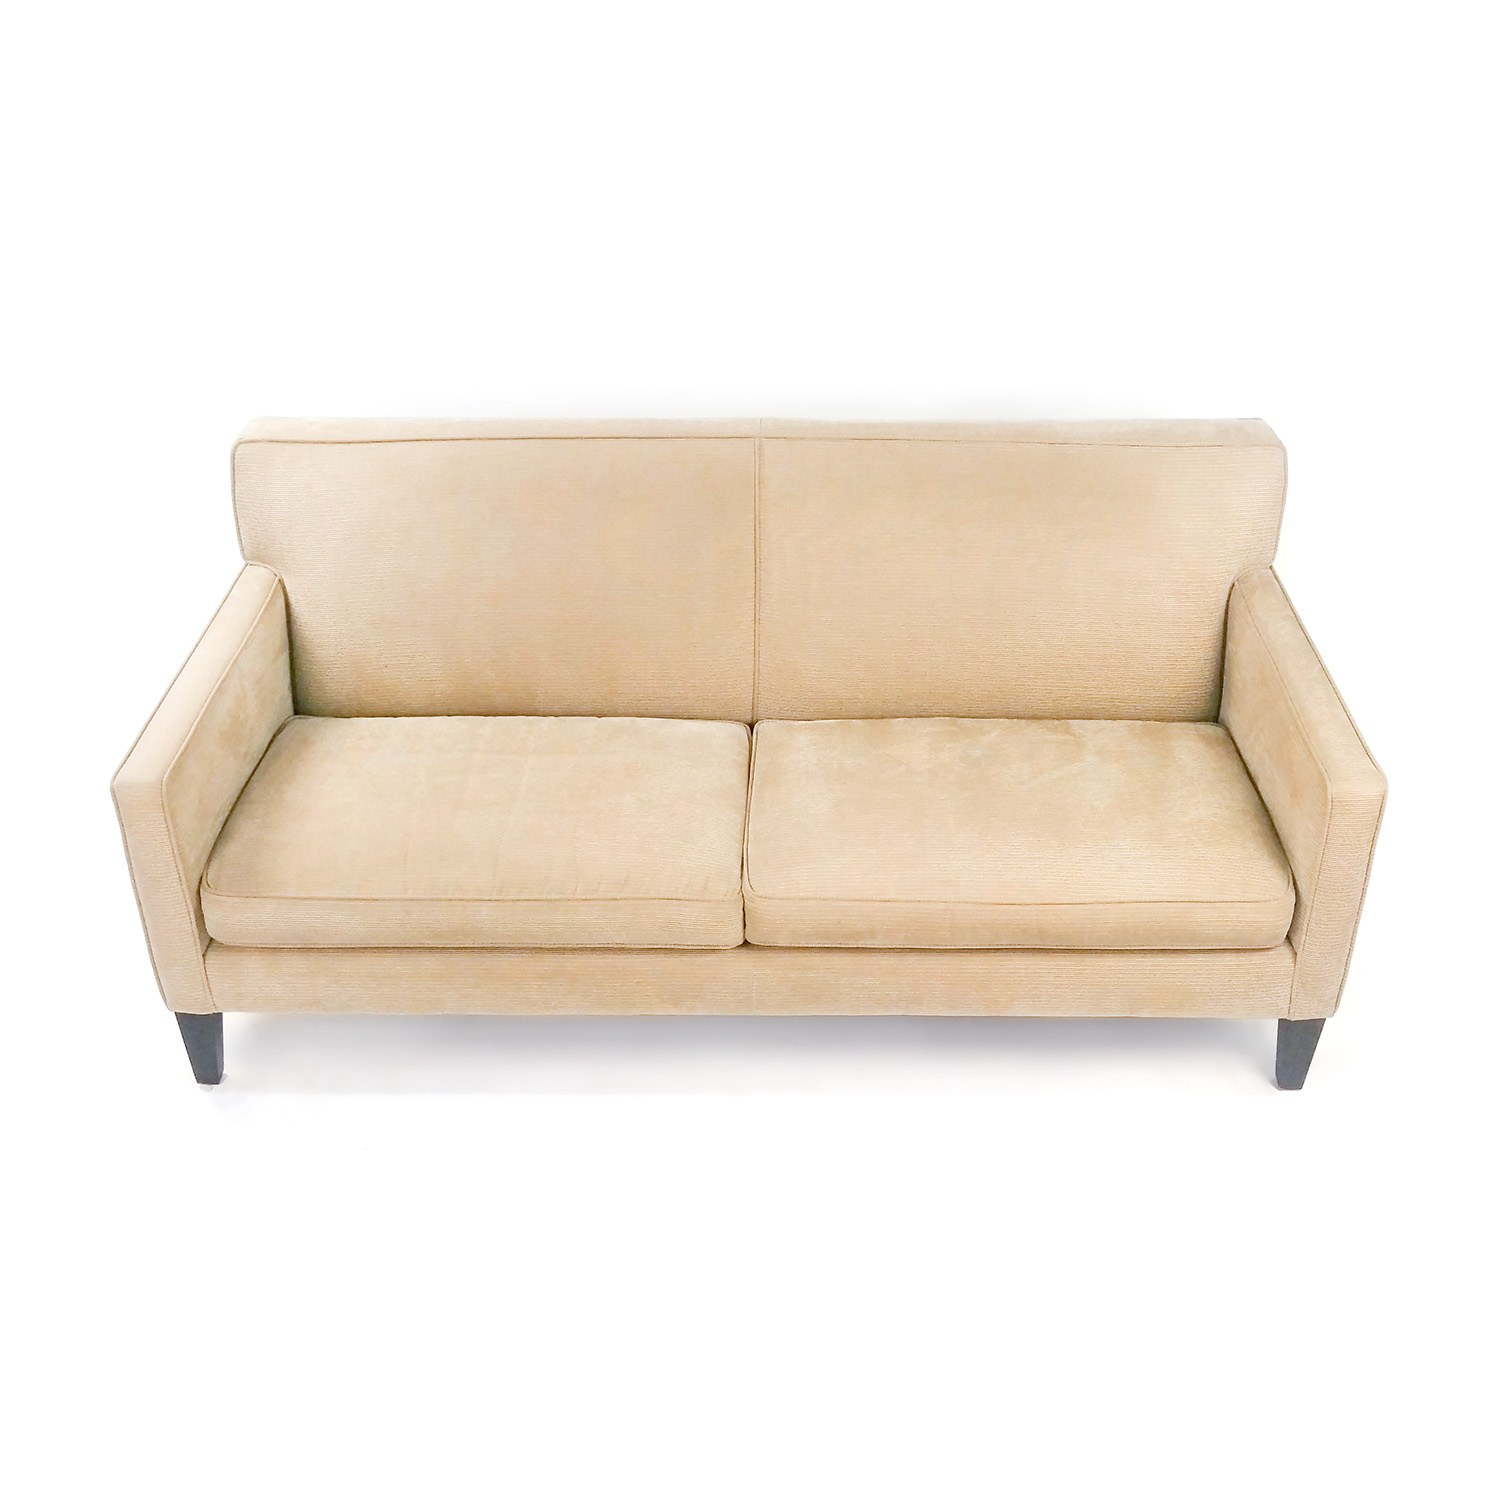 Crate and Barrel Crate and Barrel Couch